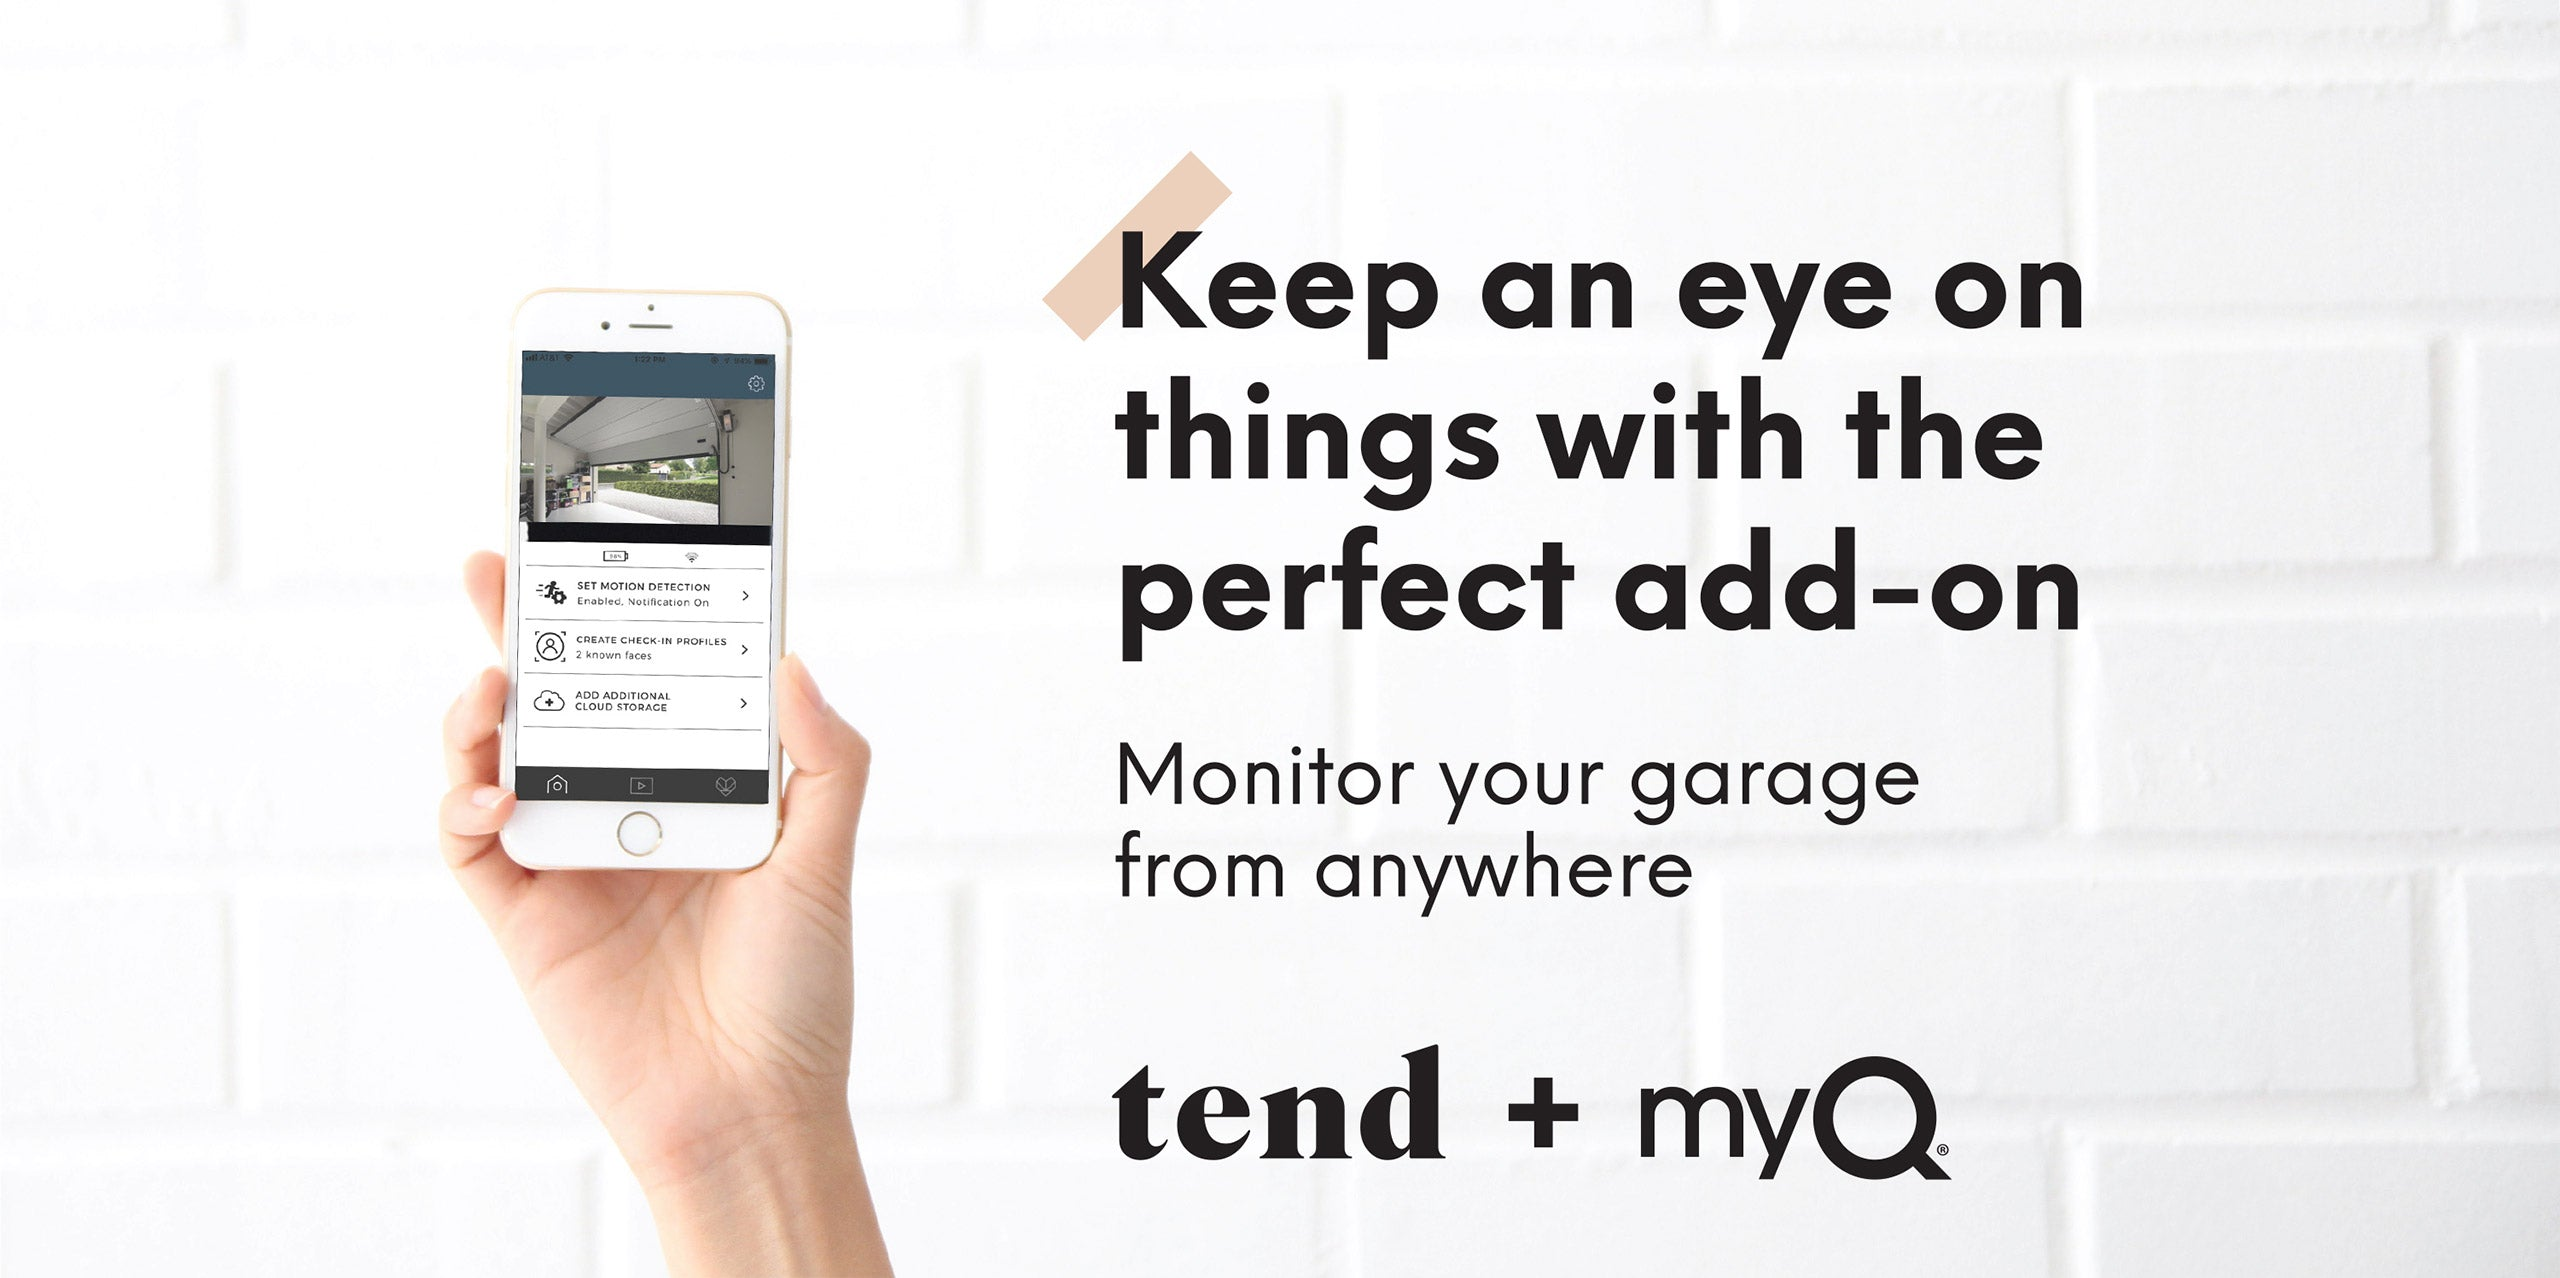 Keep an eye on things with the perfect add-on